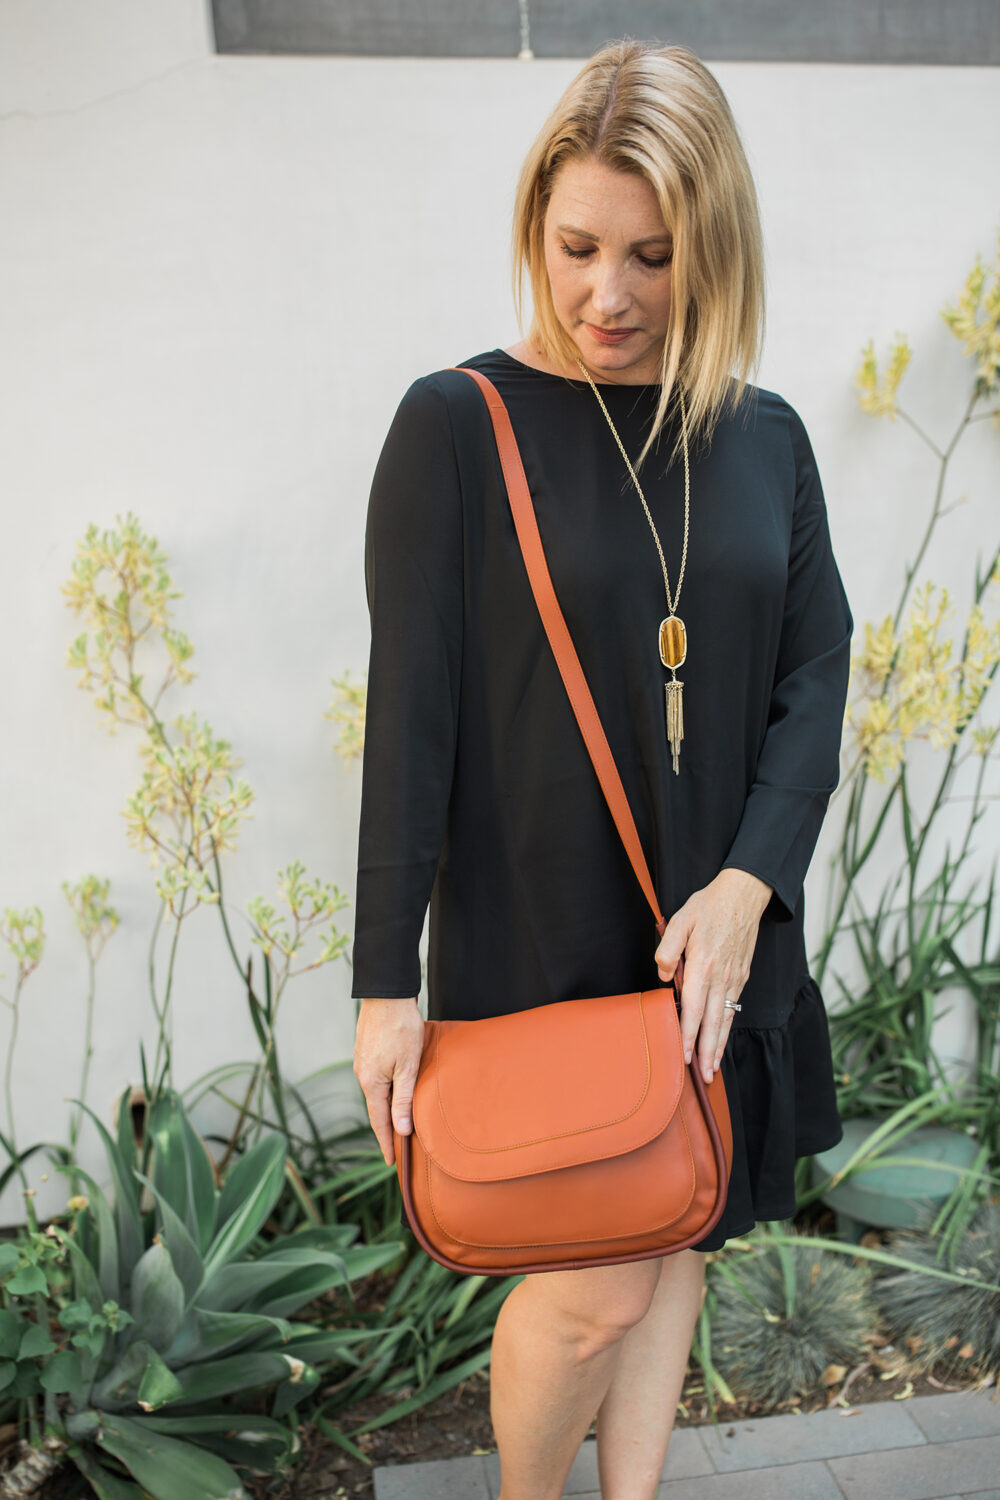 little black dress for fall: This one fits like a dream, and is great for cooler weather!